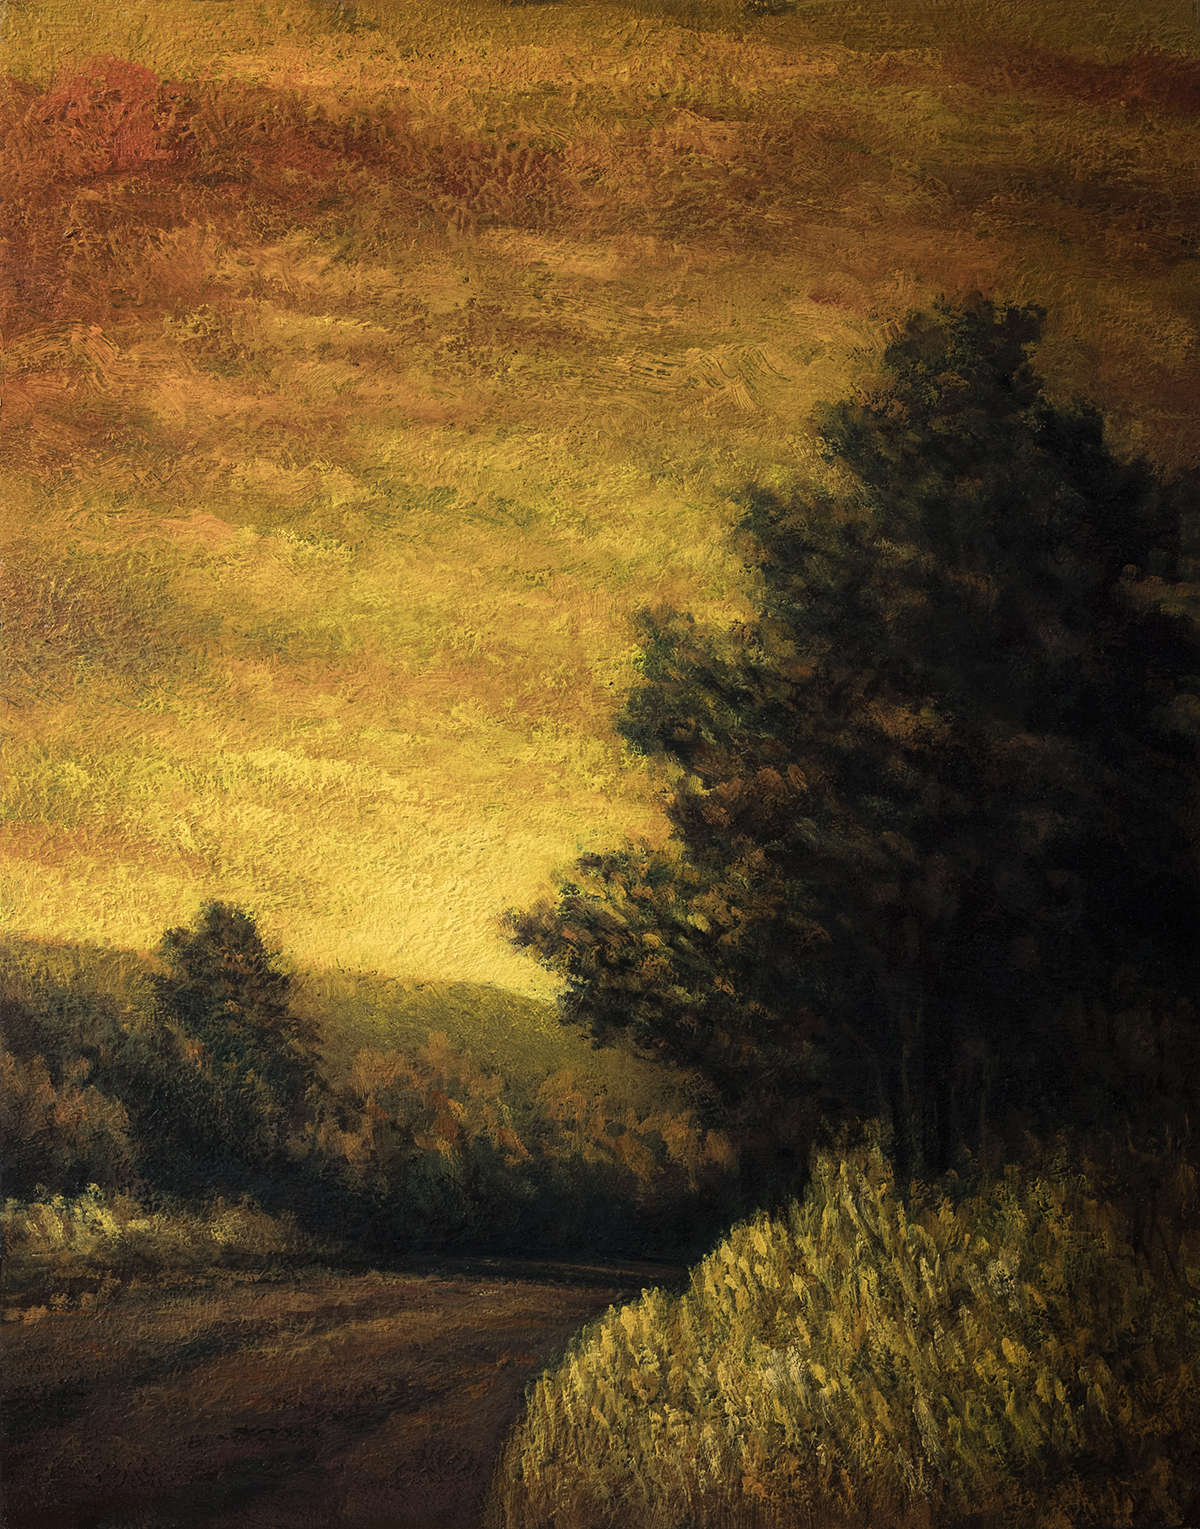 Golden Dusk by M Francis McCarthy - 11x14 Oil on Wood Panel